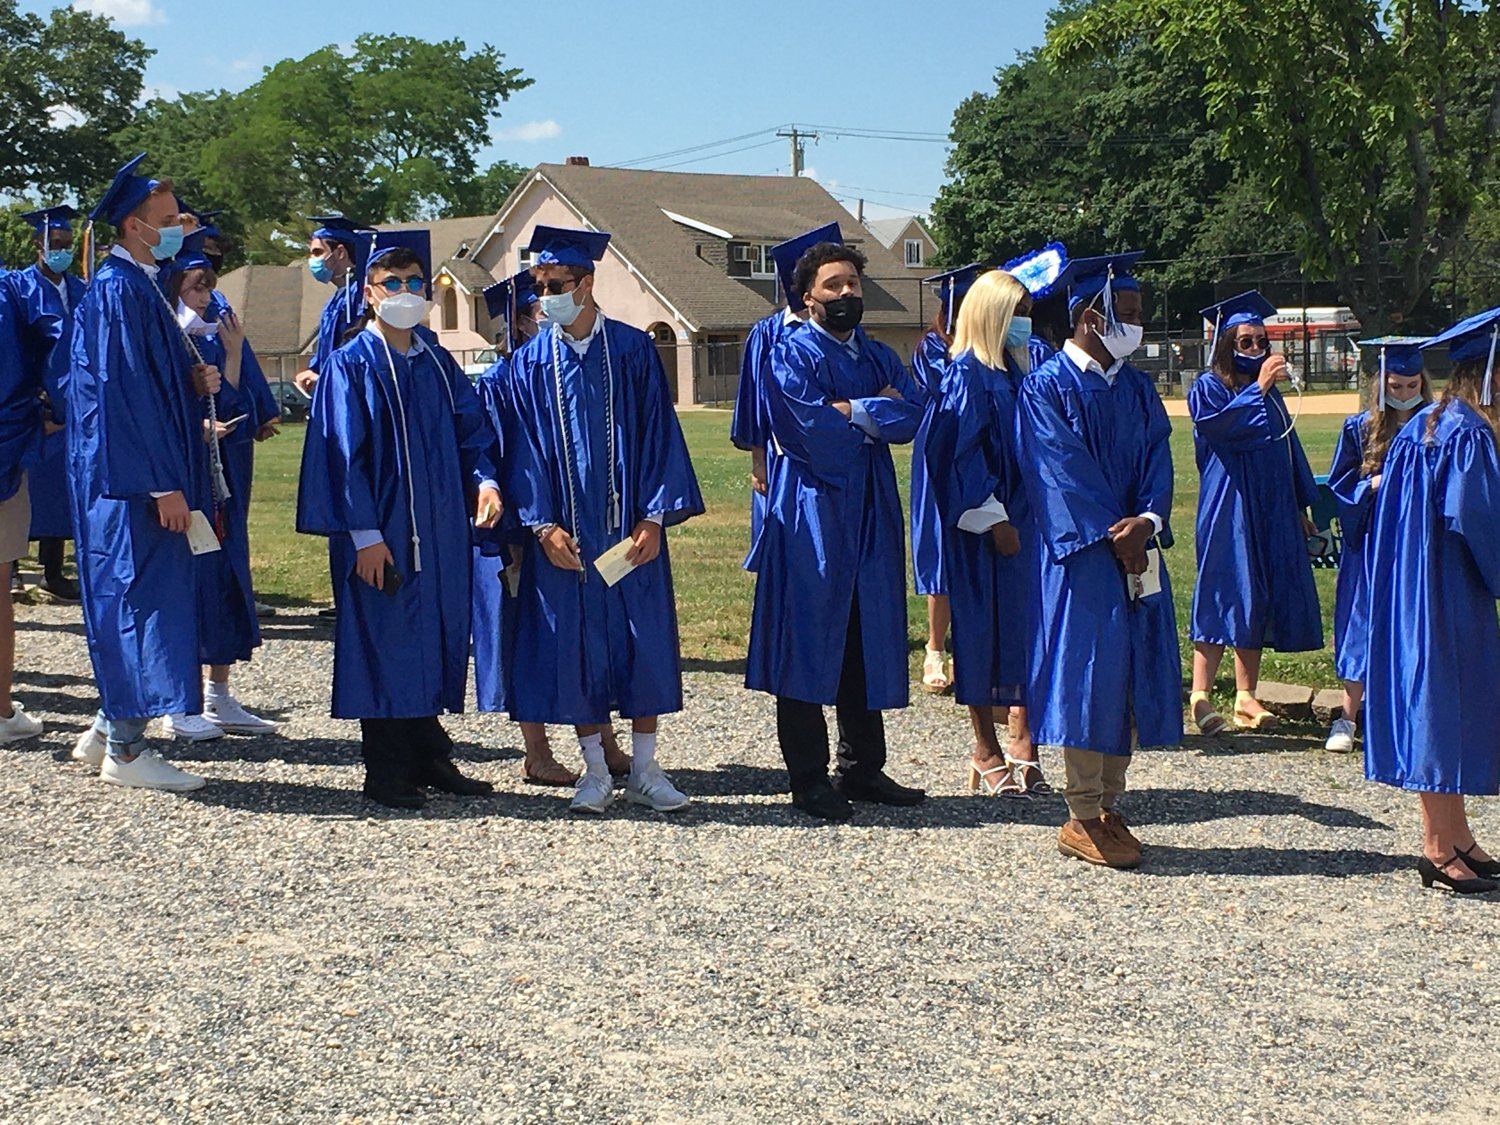 Albeit under different circumstances, Hewlett High School's class of 2020 got to experience an in-person graduation ceremony as the school held six ceremonies throughout June 29 and 30.